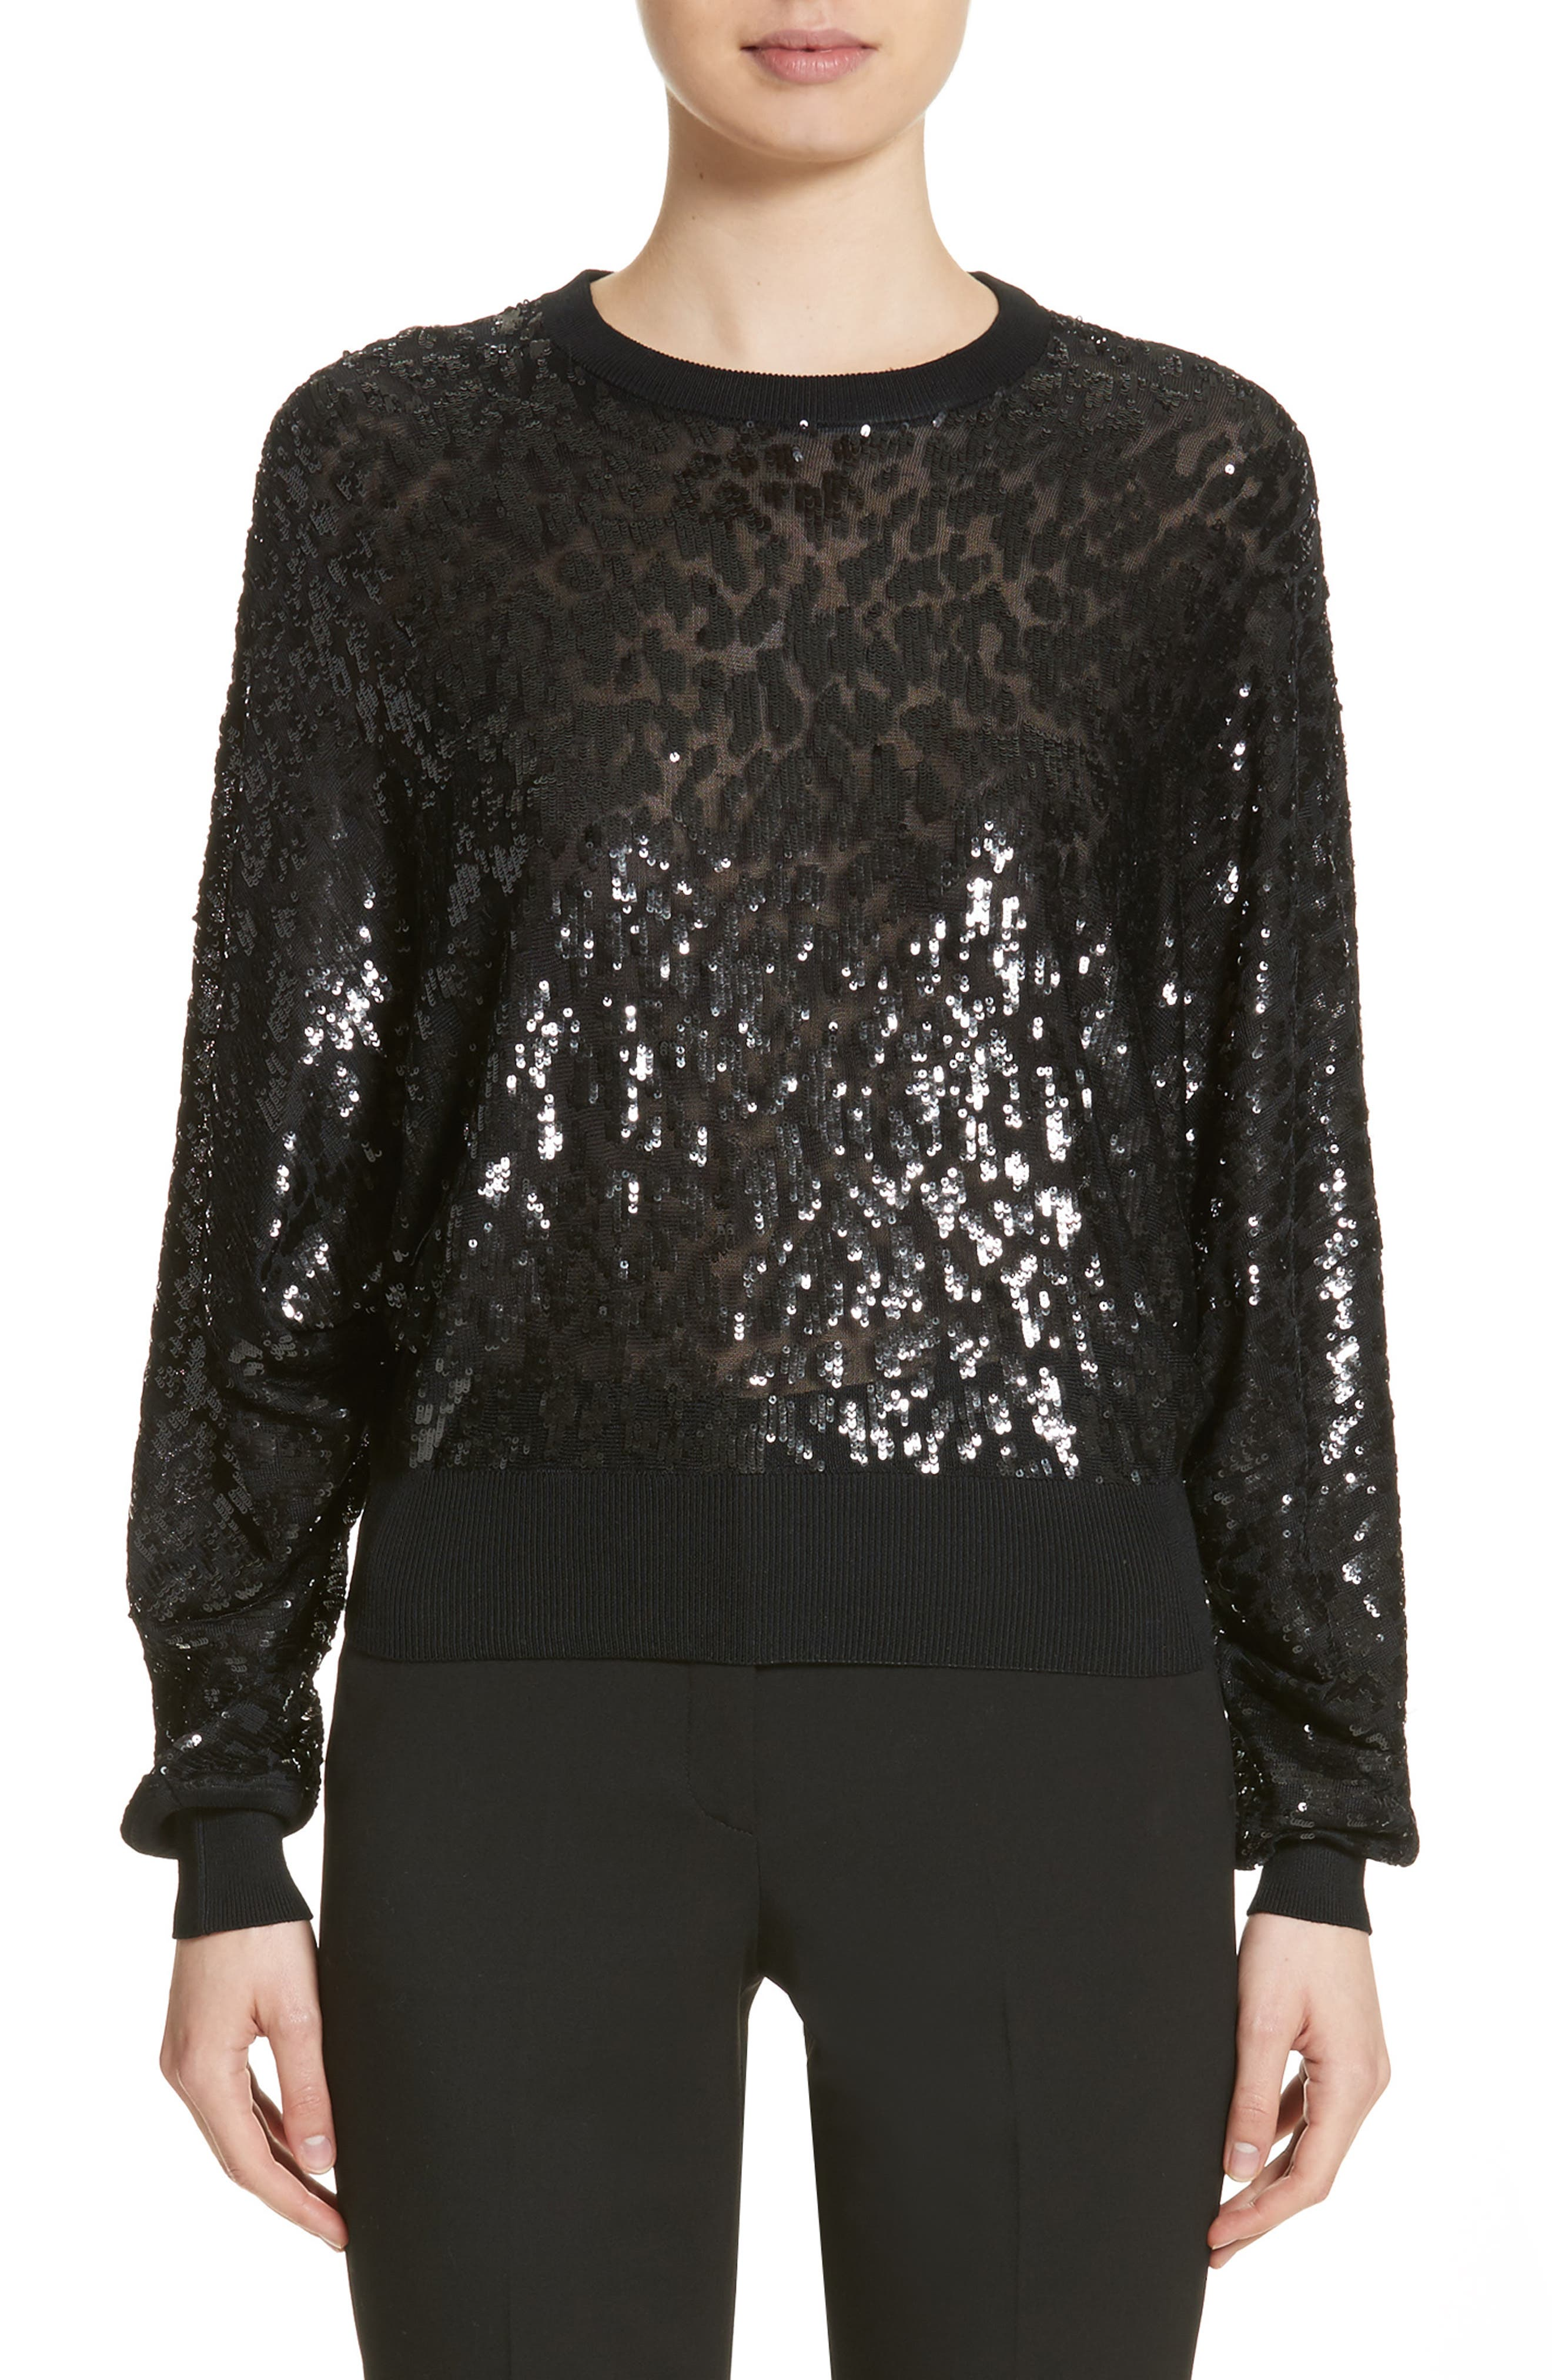 Main Image - Michael Kors Sequined Tulle Leopard Sweater